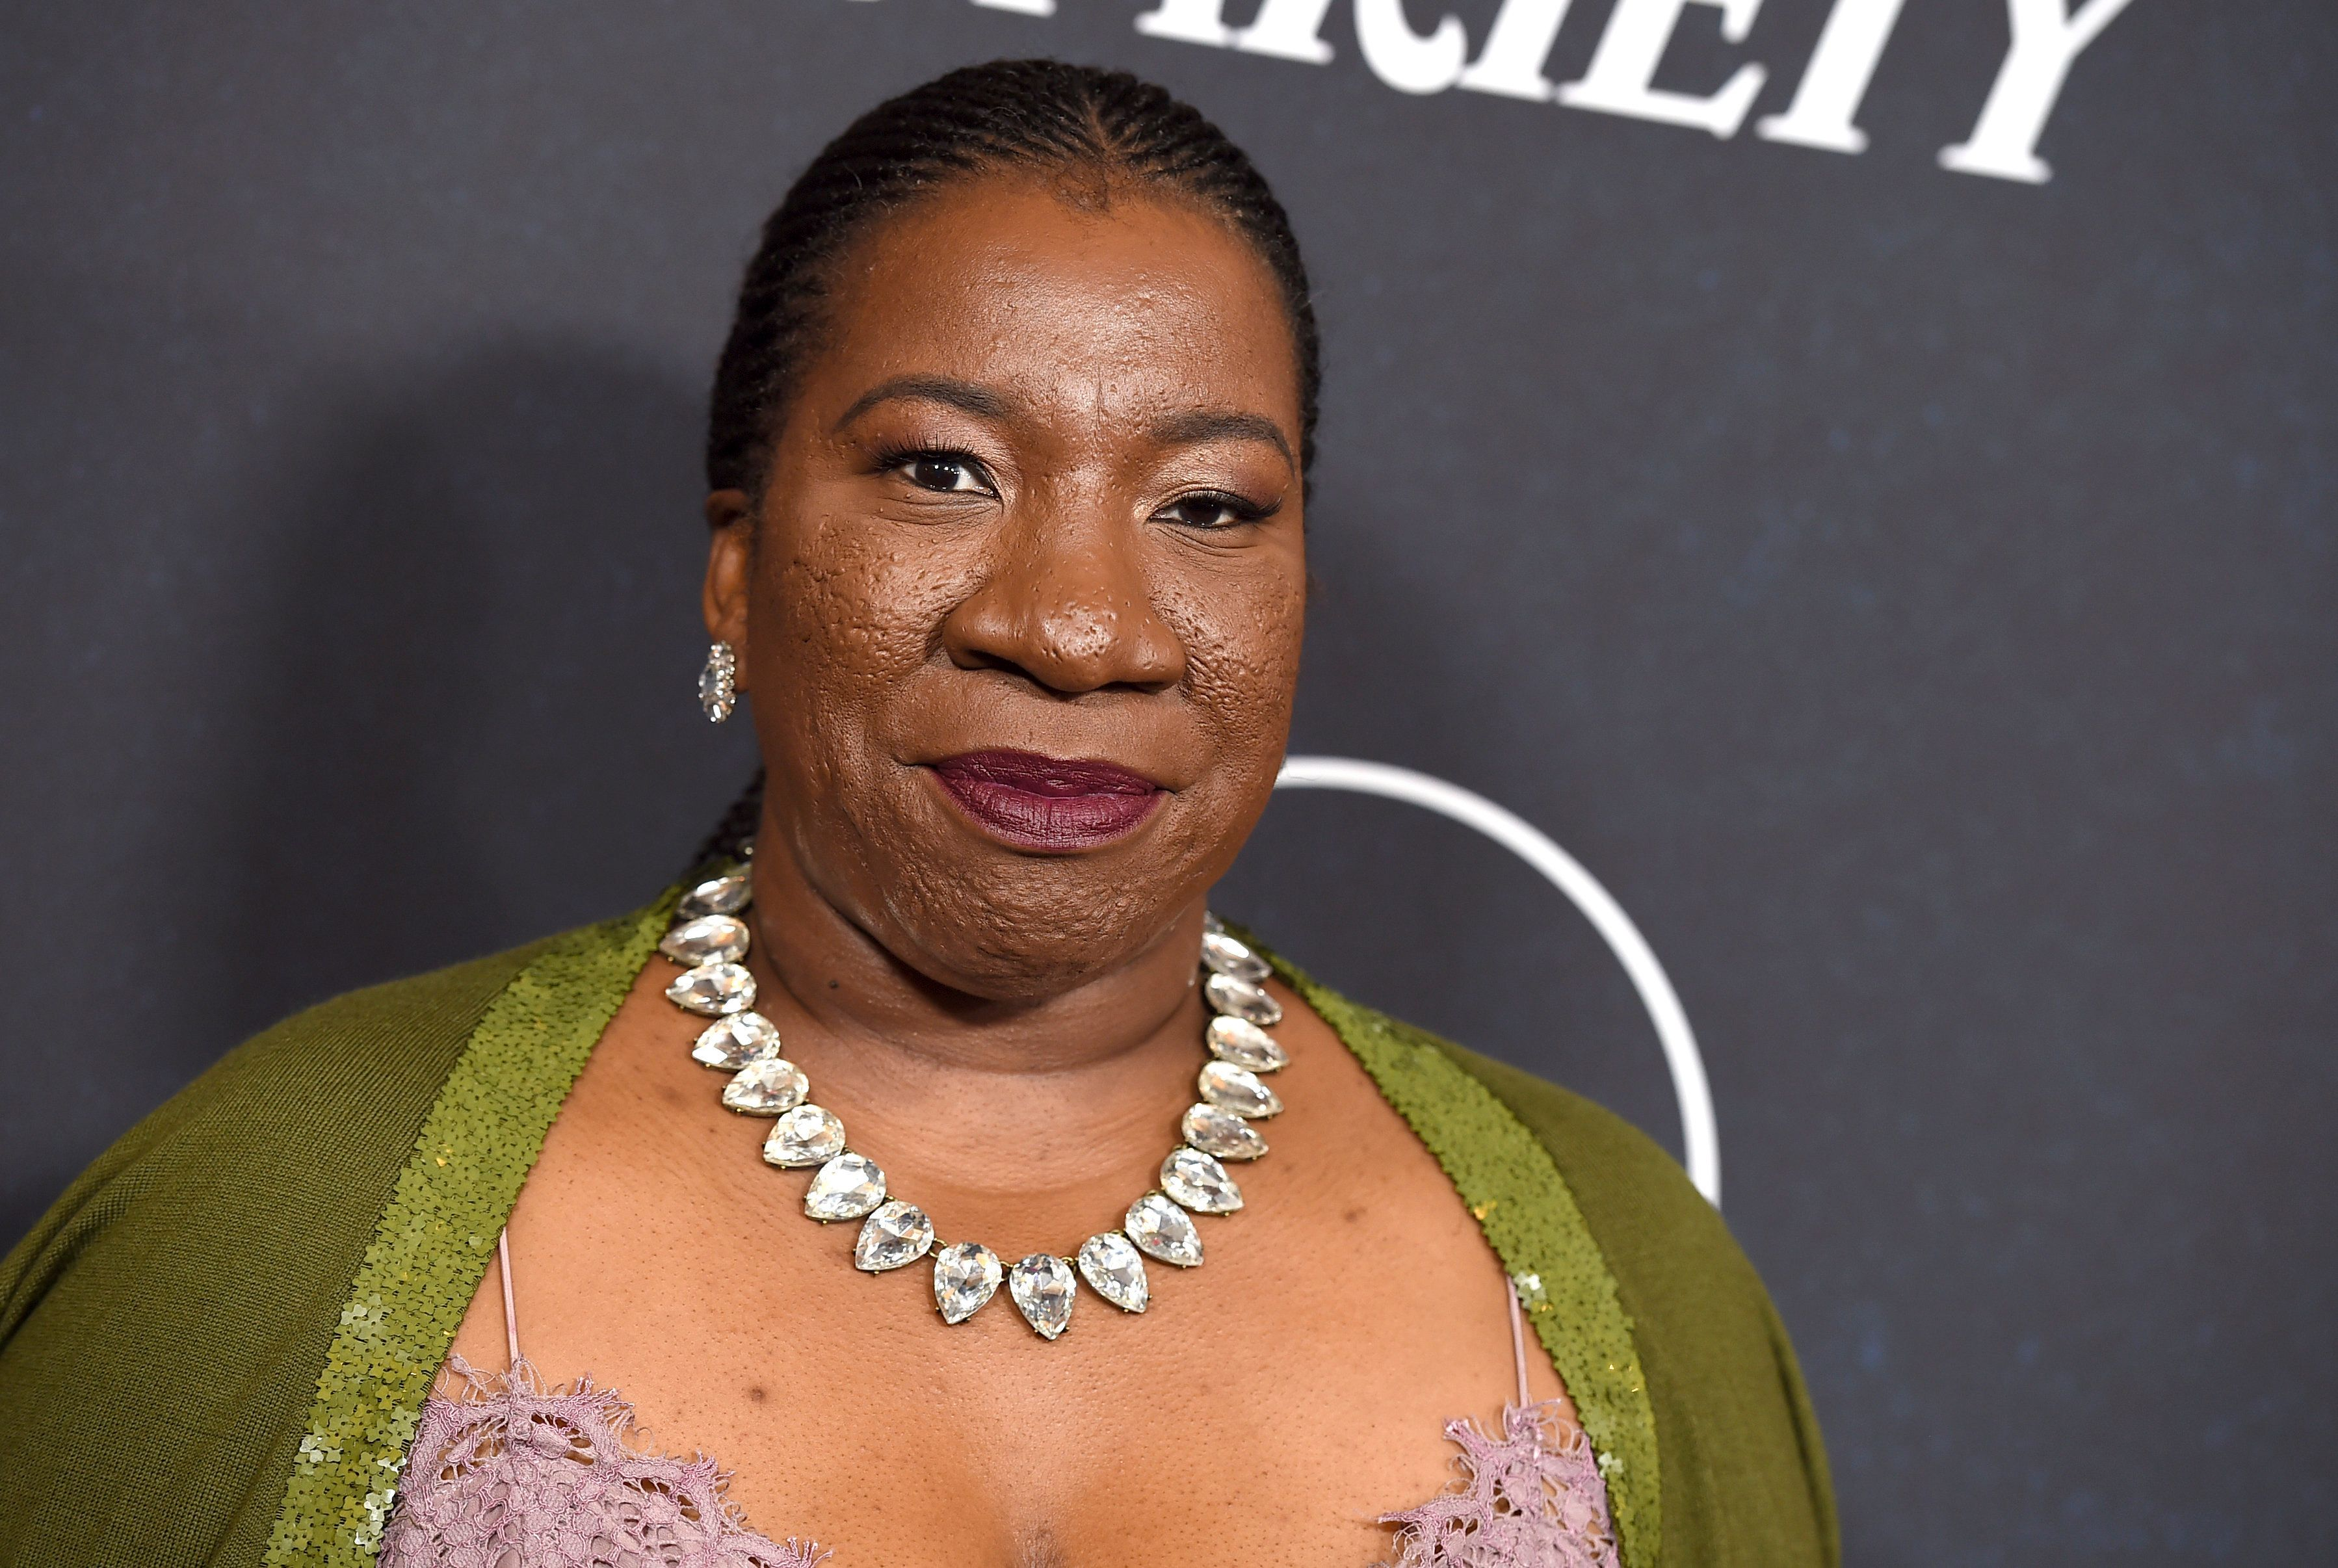 FILE - In this Oct. 12, 2018 file photo, #MeToo founder Tarana Burke arrives at Variety's Power of Women event in Beverly Hills, Calif. Eight groups across the nation have been awarded funding from the New York Women's Foundation for their efforts to fight sexual violence. The groups in this first round of funding, chosen in consultation with Burke, are focused on underserved communities such as communities of color, immigrant communities and LGBTQ people. (Photo by Jordan Strauss/Invision/AP, File)